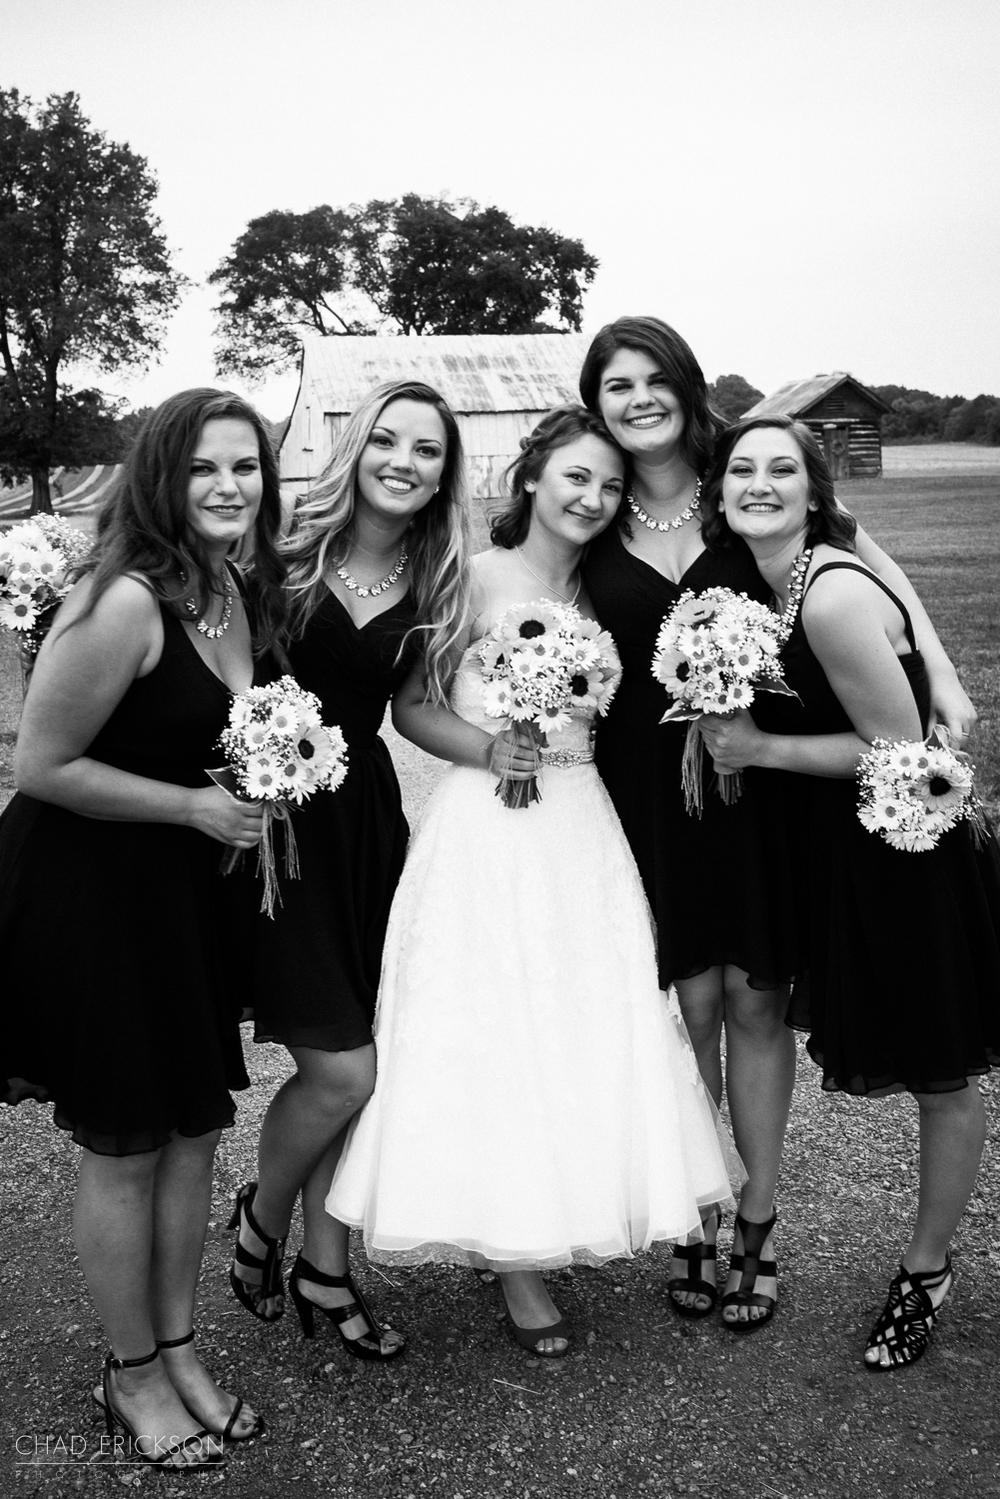 B&W bridesmaids